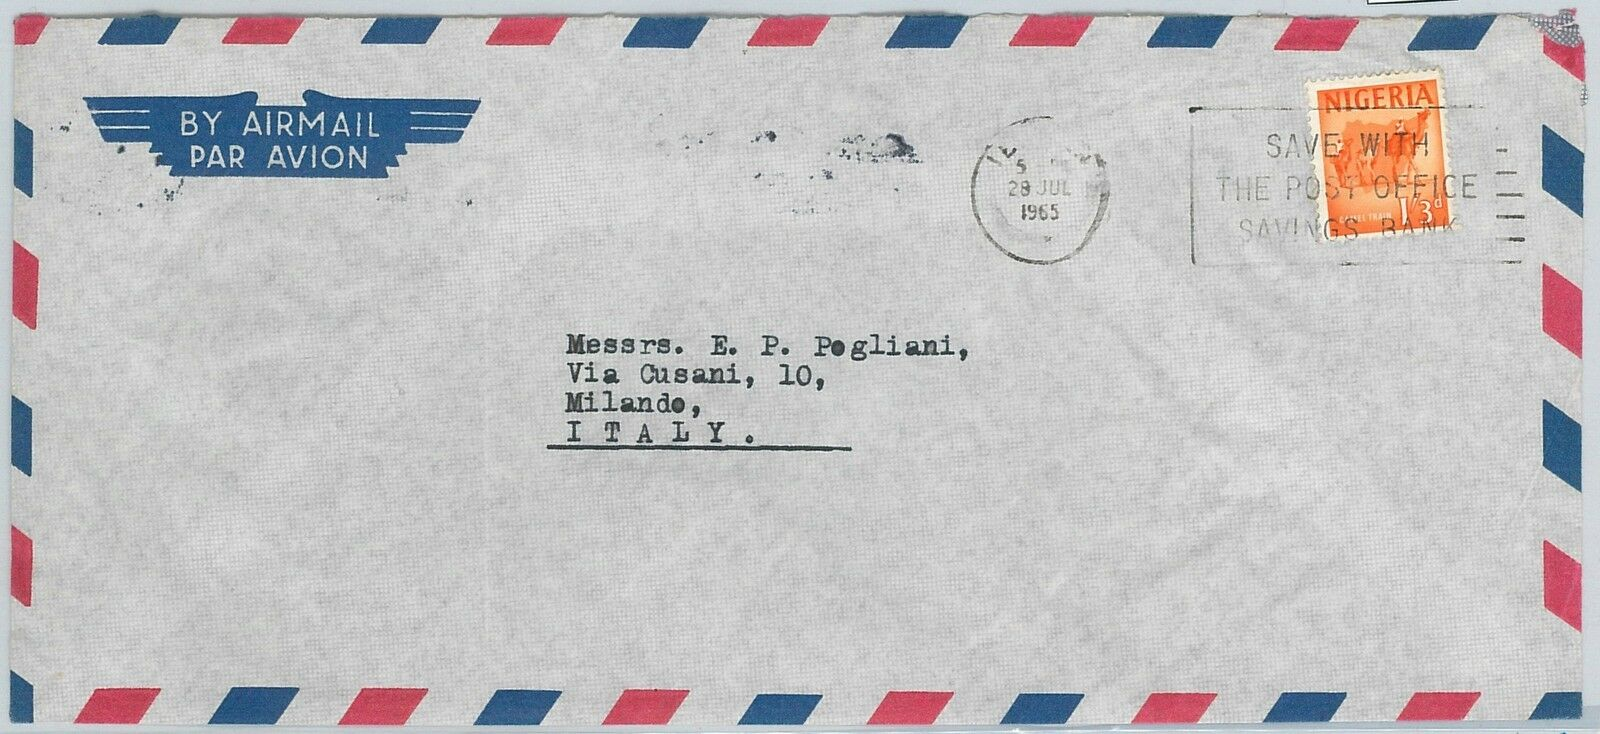 61396 - NIGERIA - POSTAL HISTORY - AIRMAIL COVER  to ITALY - 1965